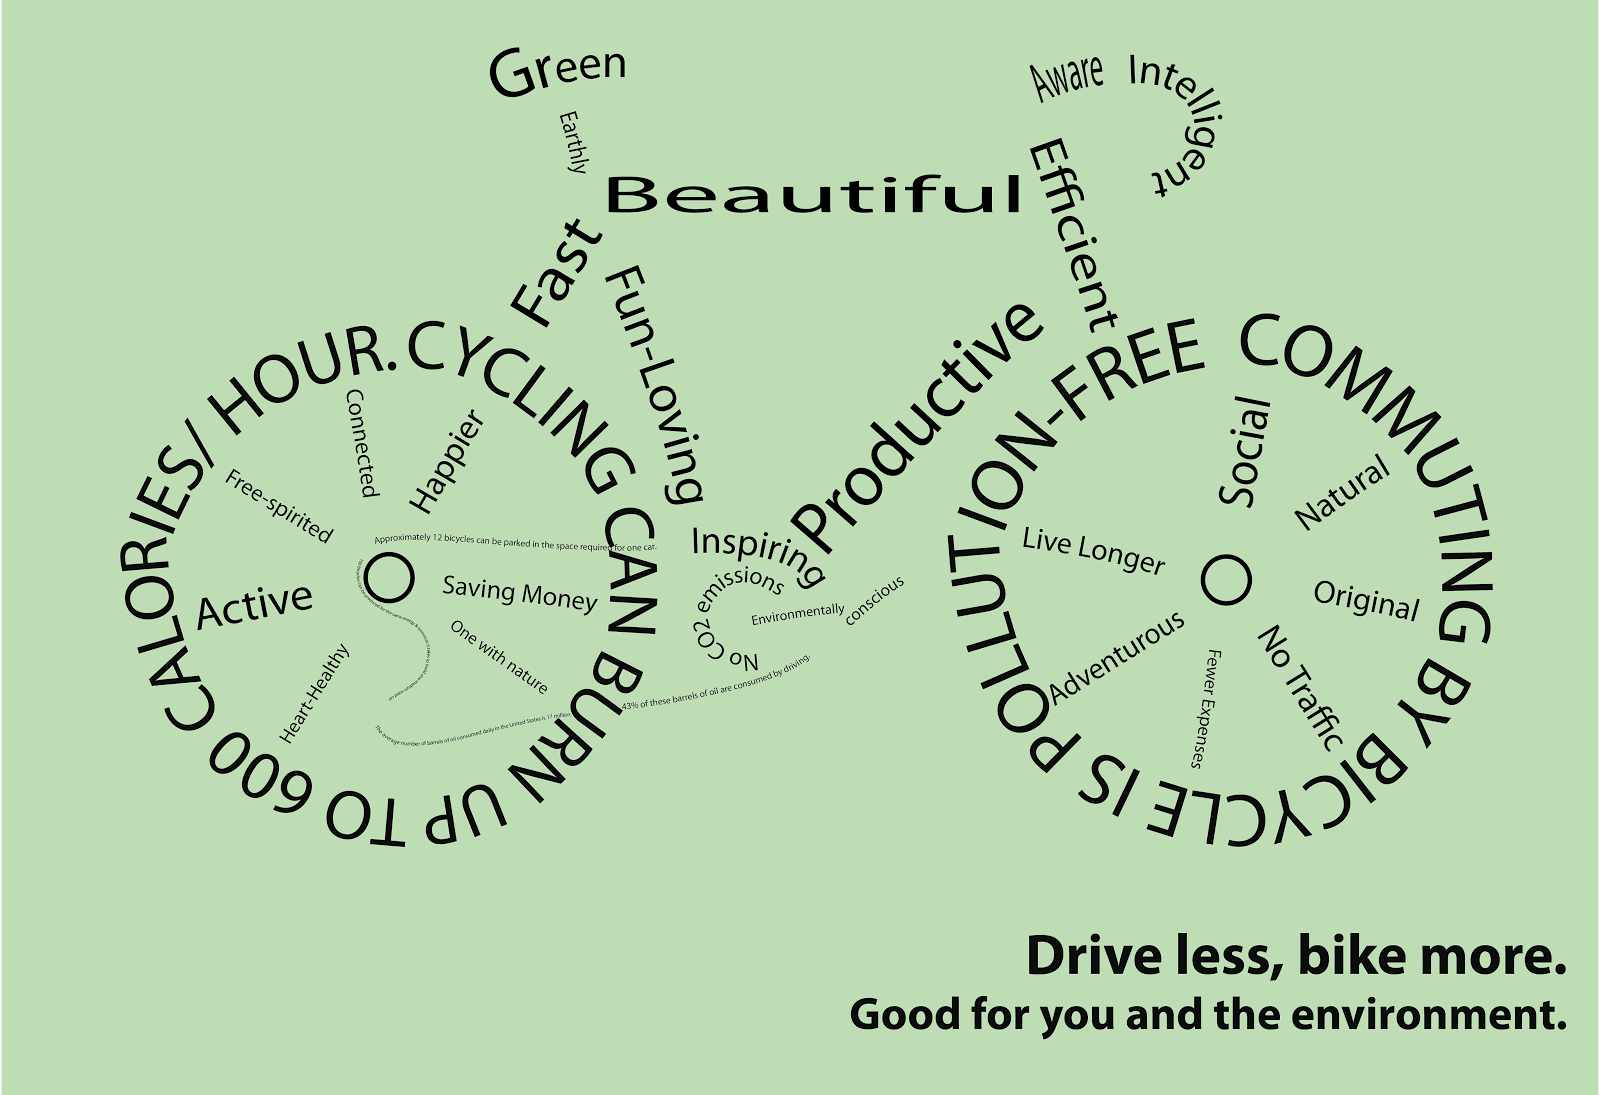 Cycling is Save the planet: